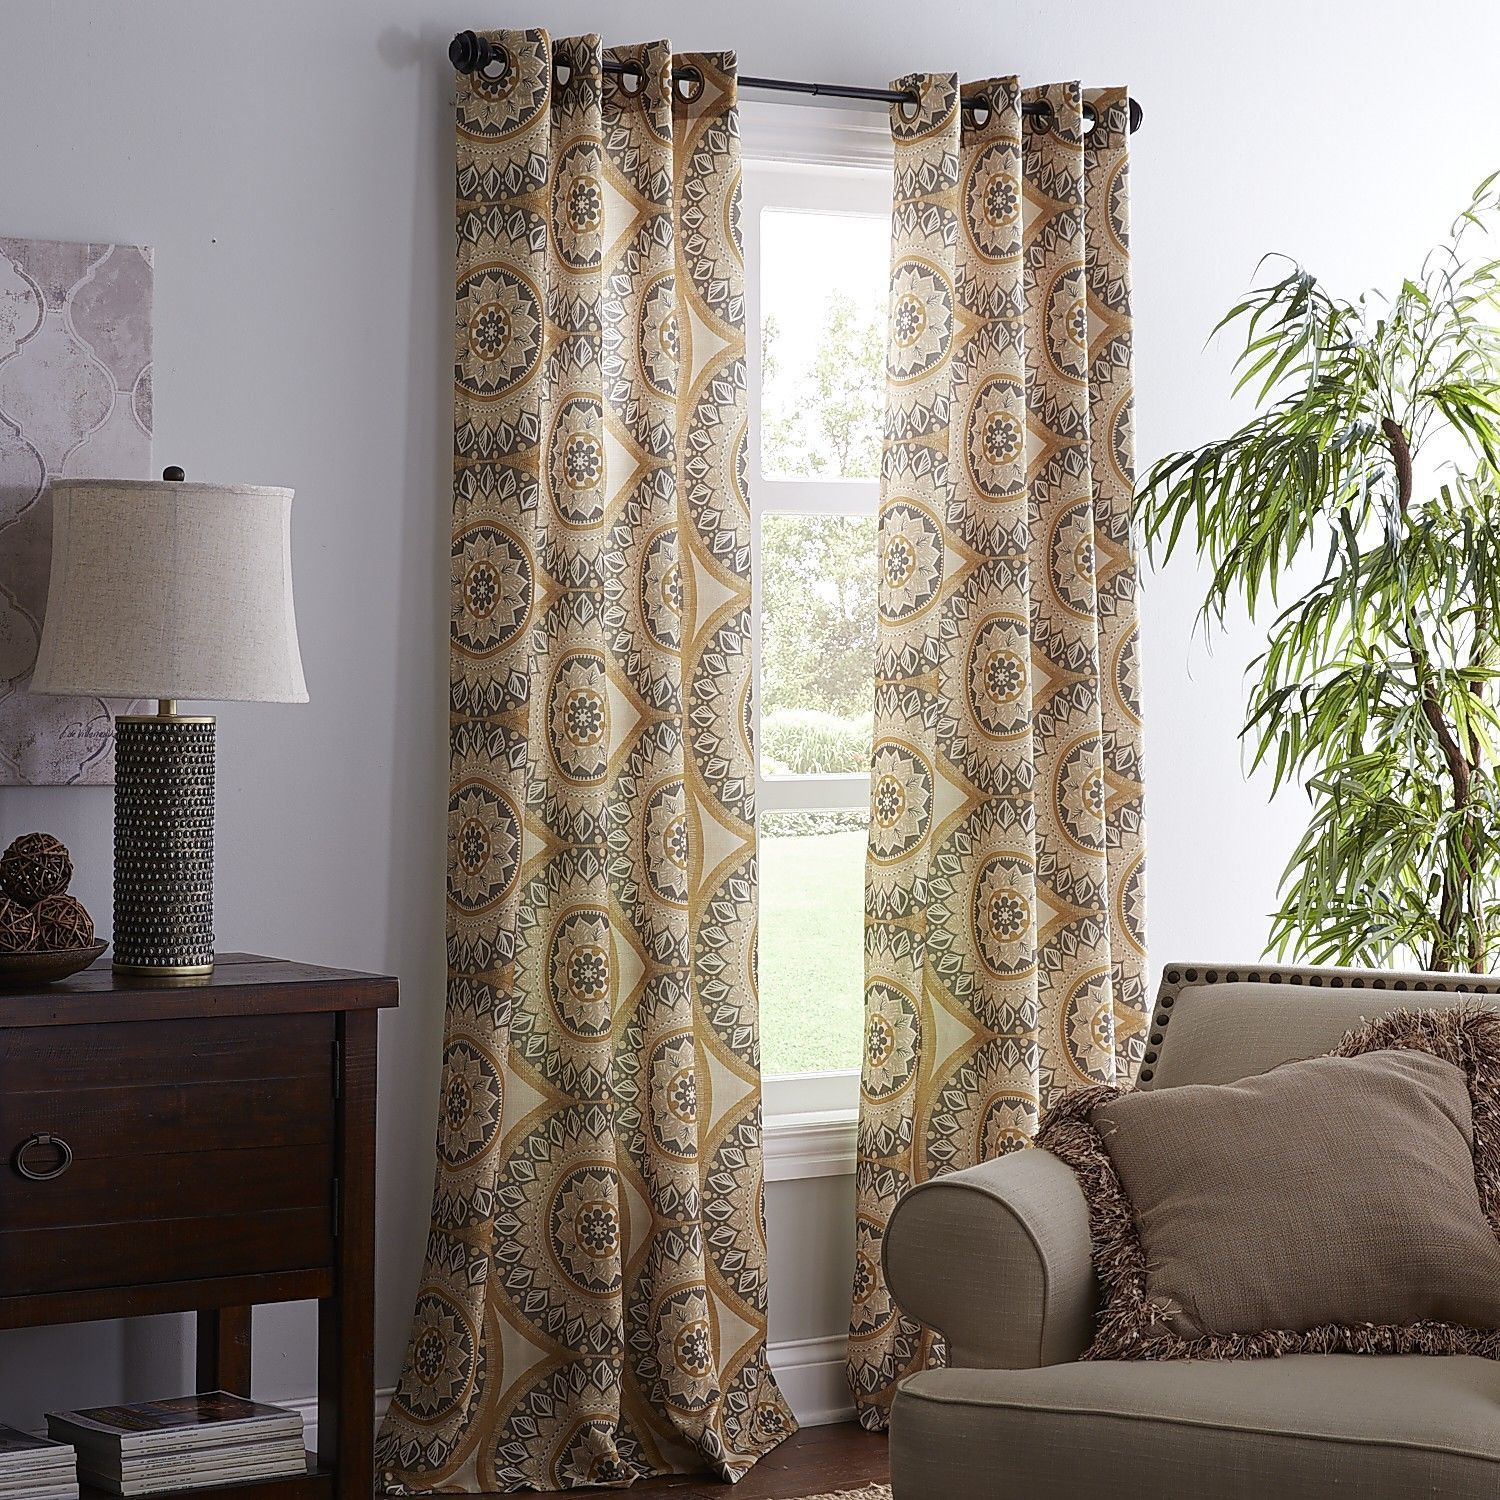 Awesome Suzani Curtain   Bohemian Circles   Pier One